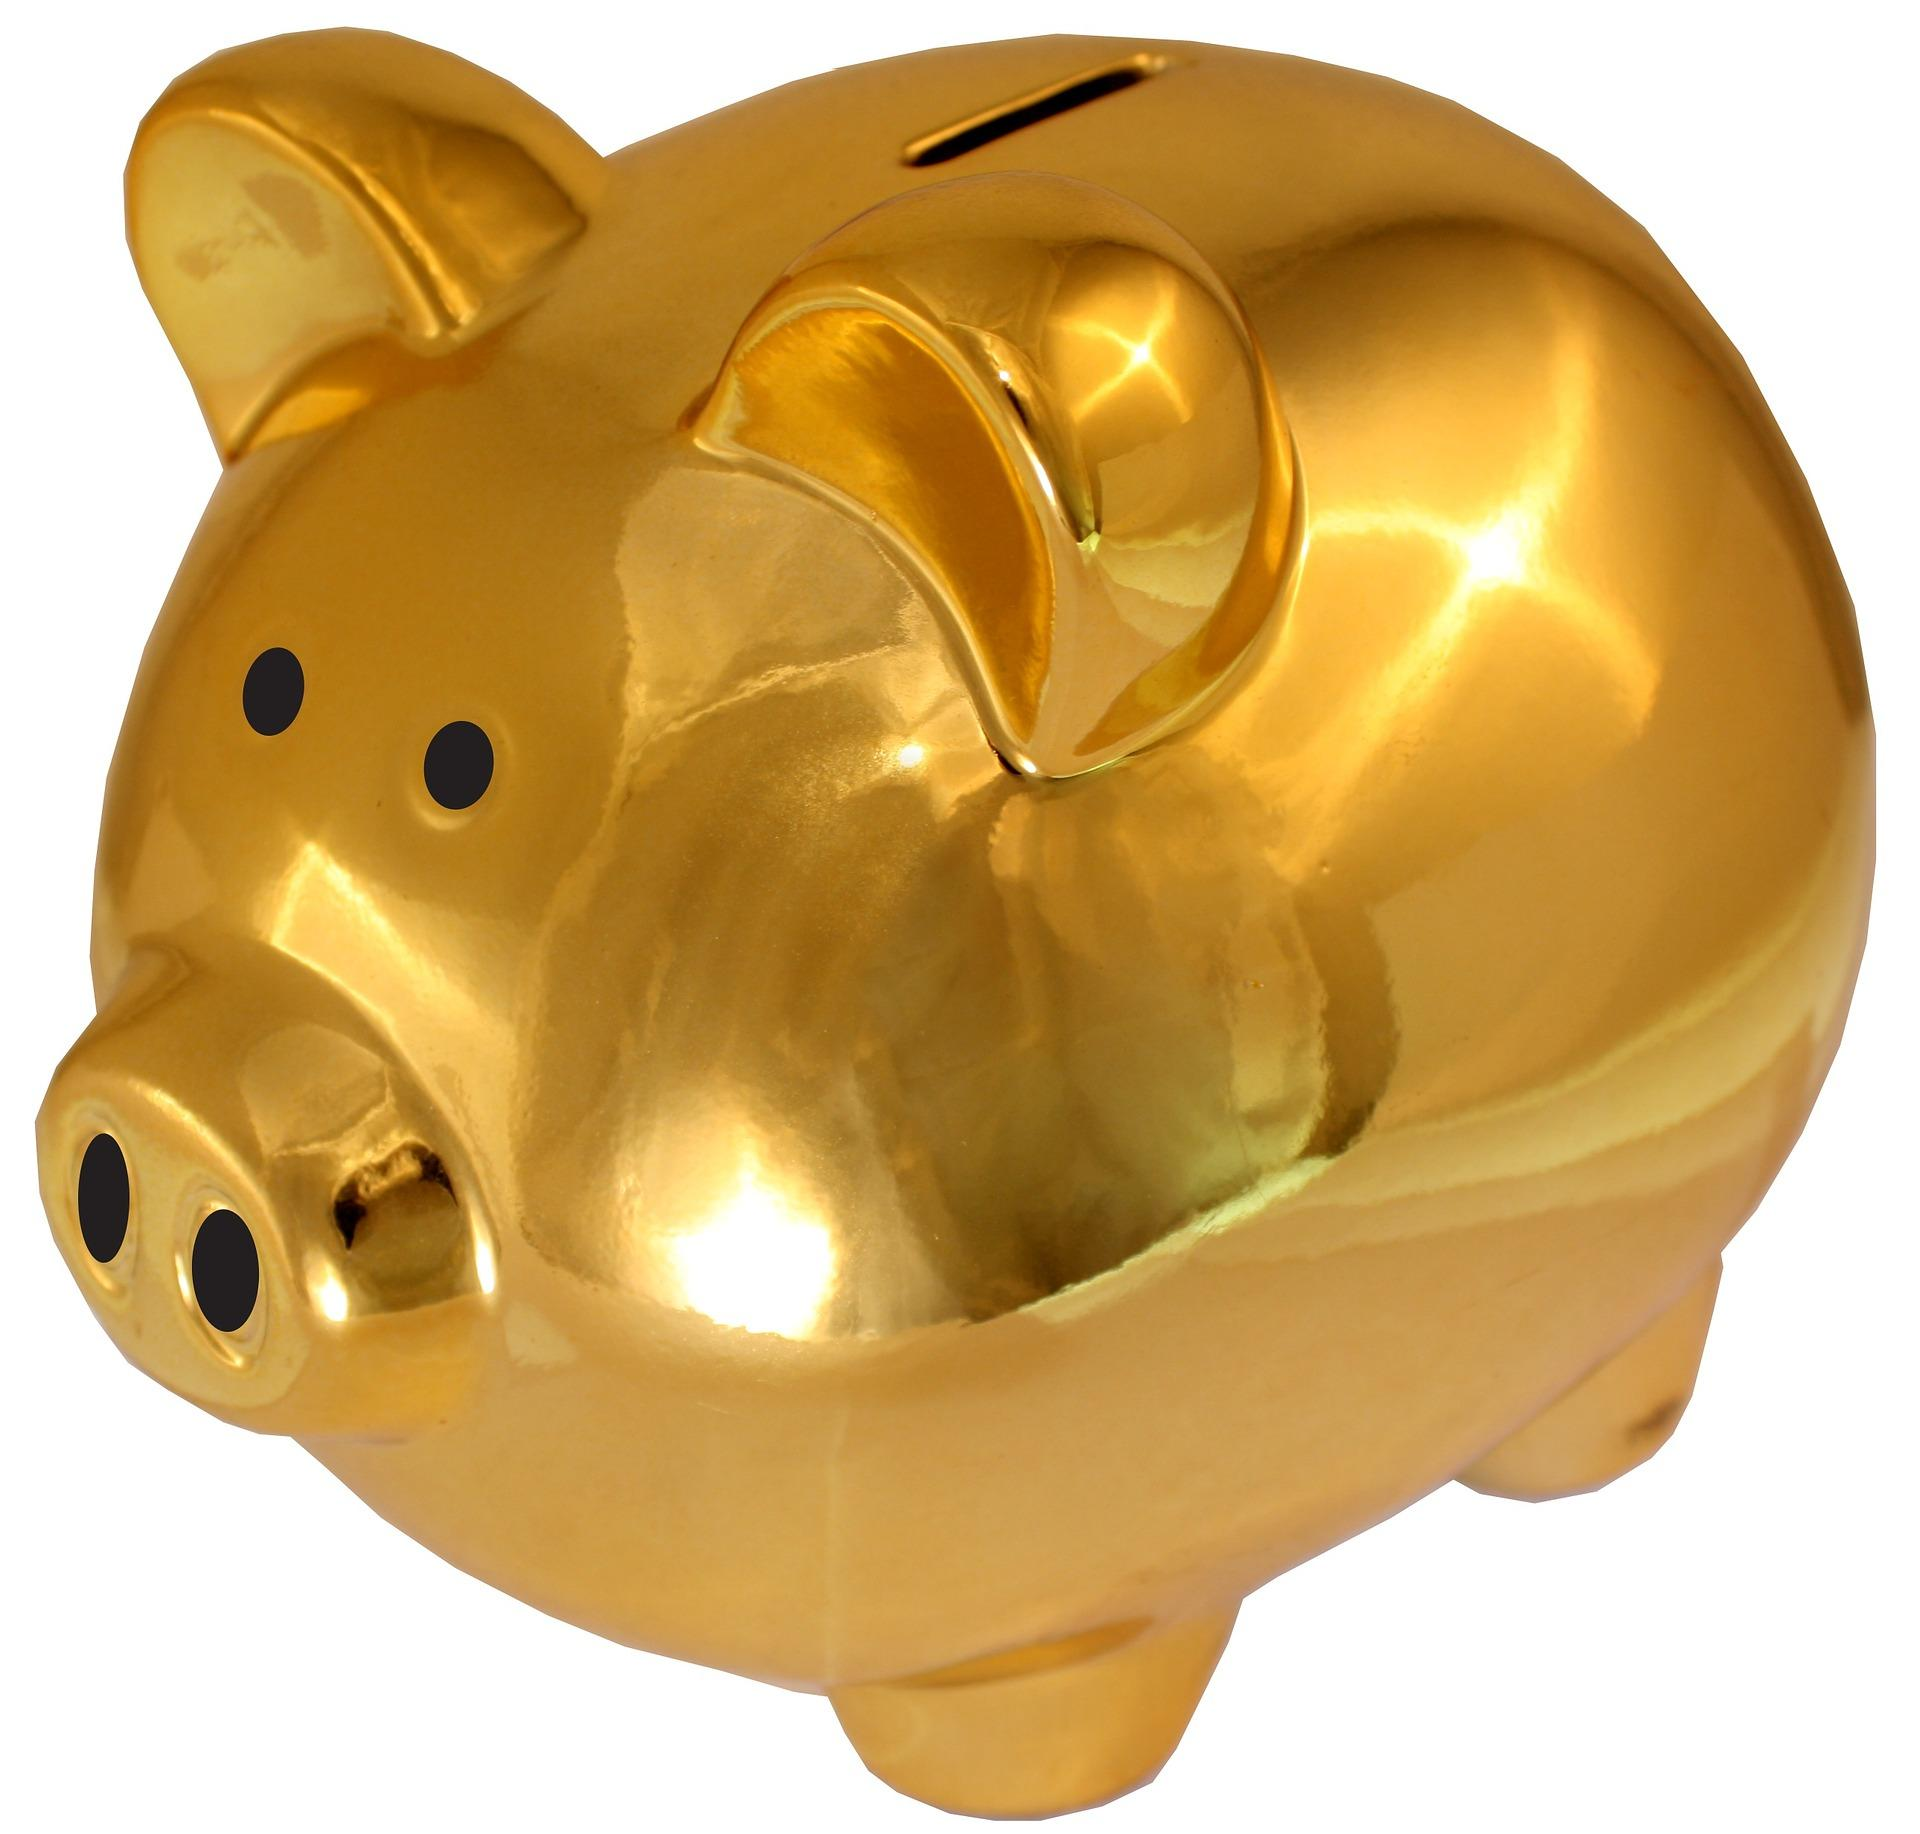 What to make of the staples buyout staples inc nasdaqspls the above golden piggy bank could be a symbol for the cash staples owners will be receiving once sycamore closes the acquisition of the company biocorpaavc